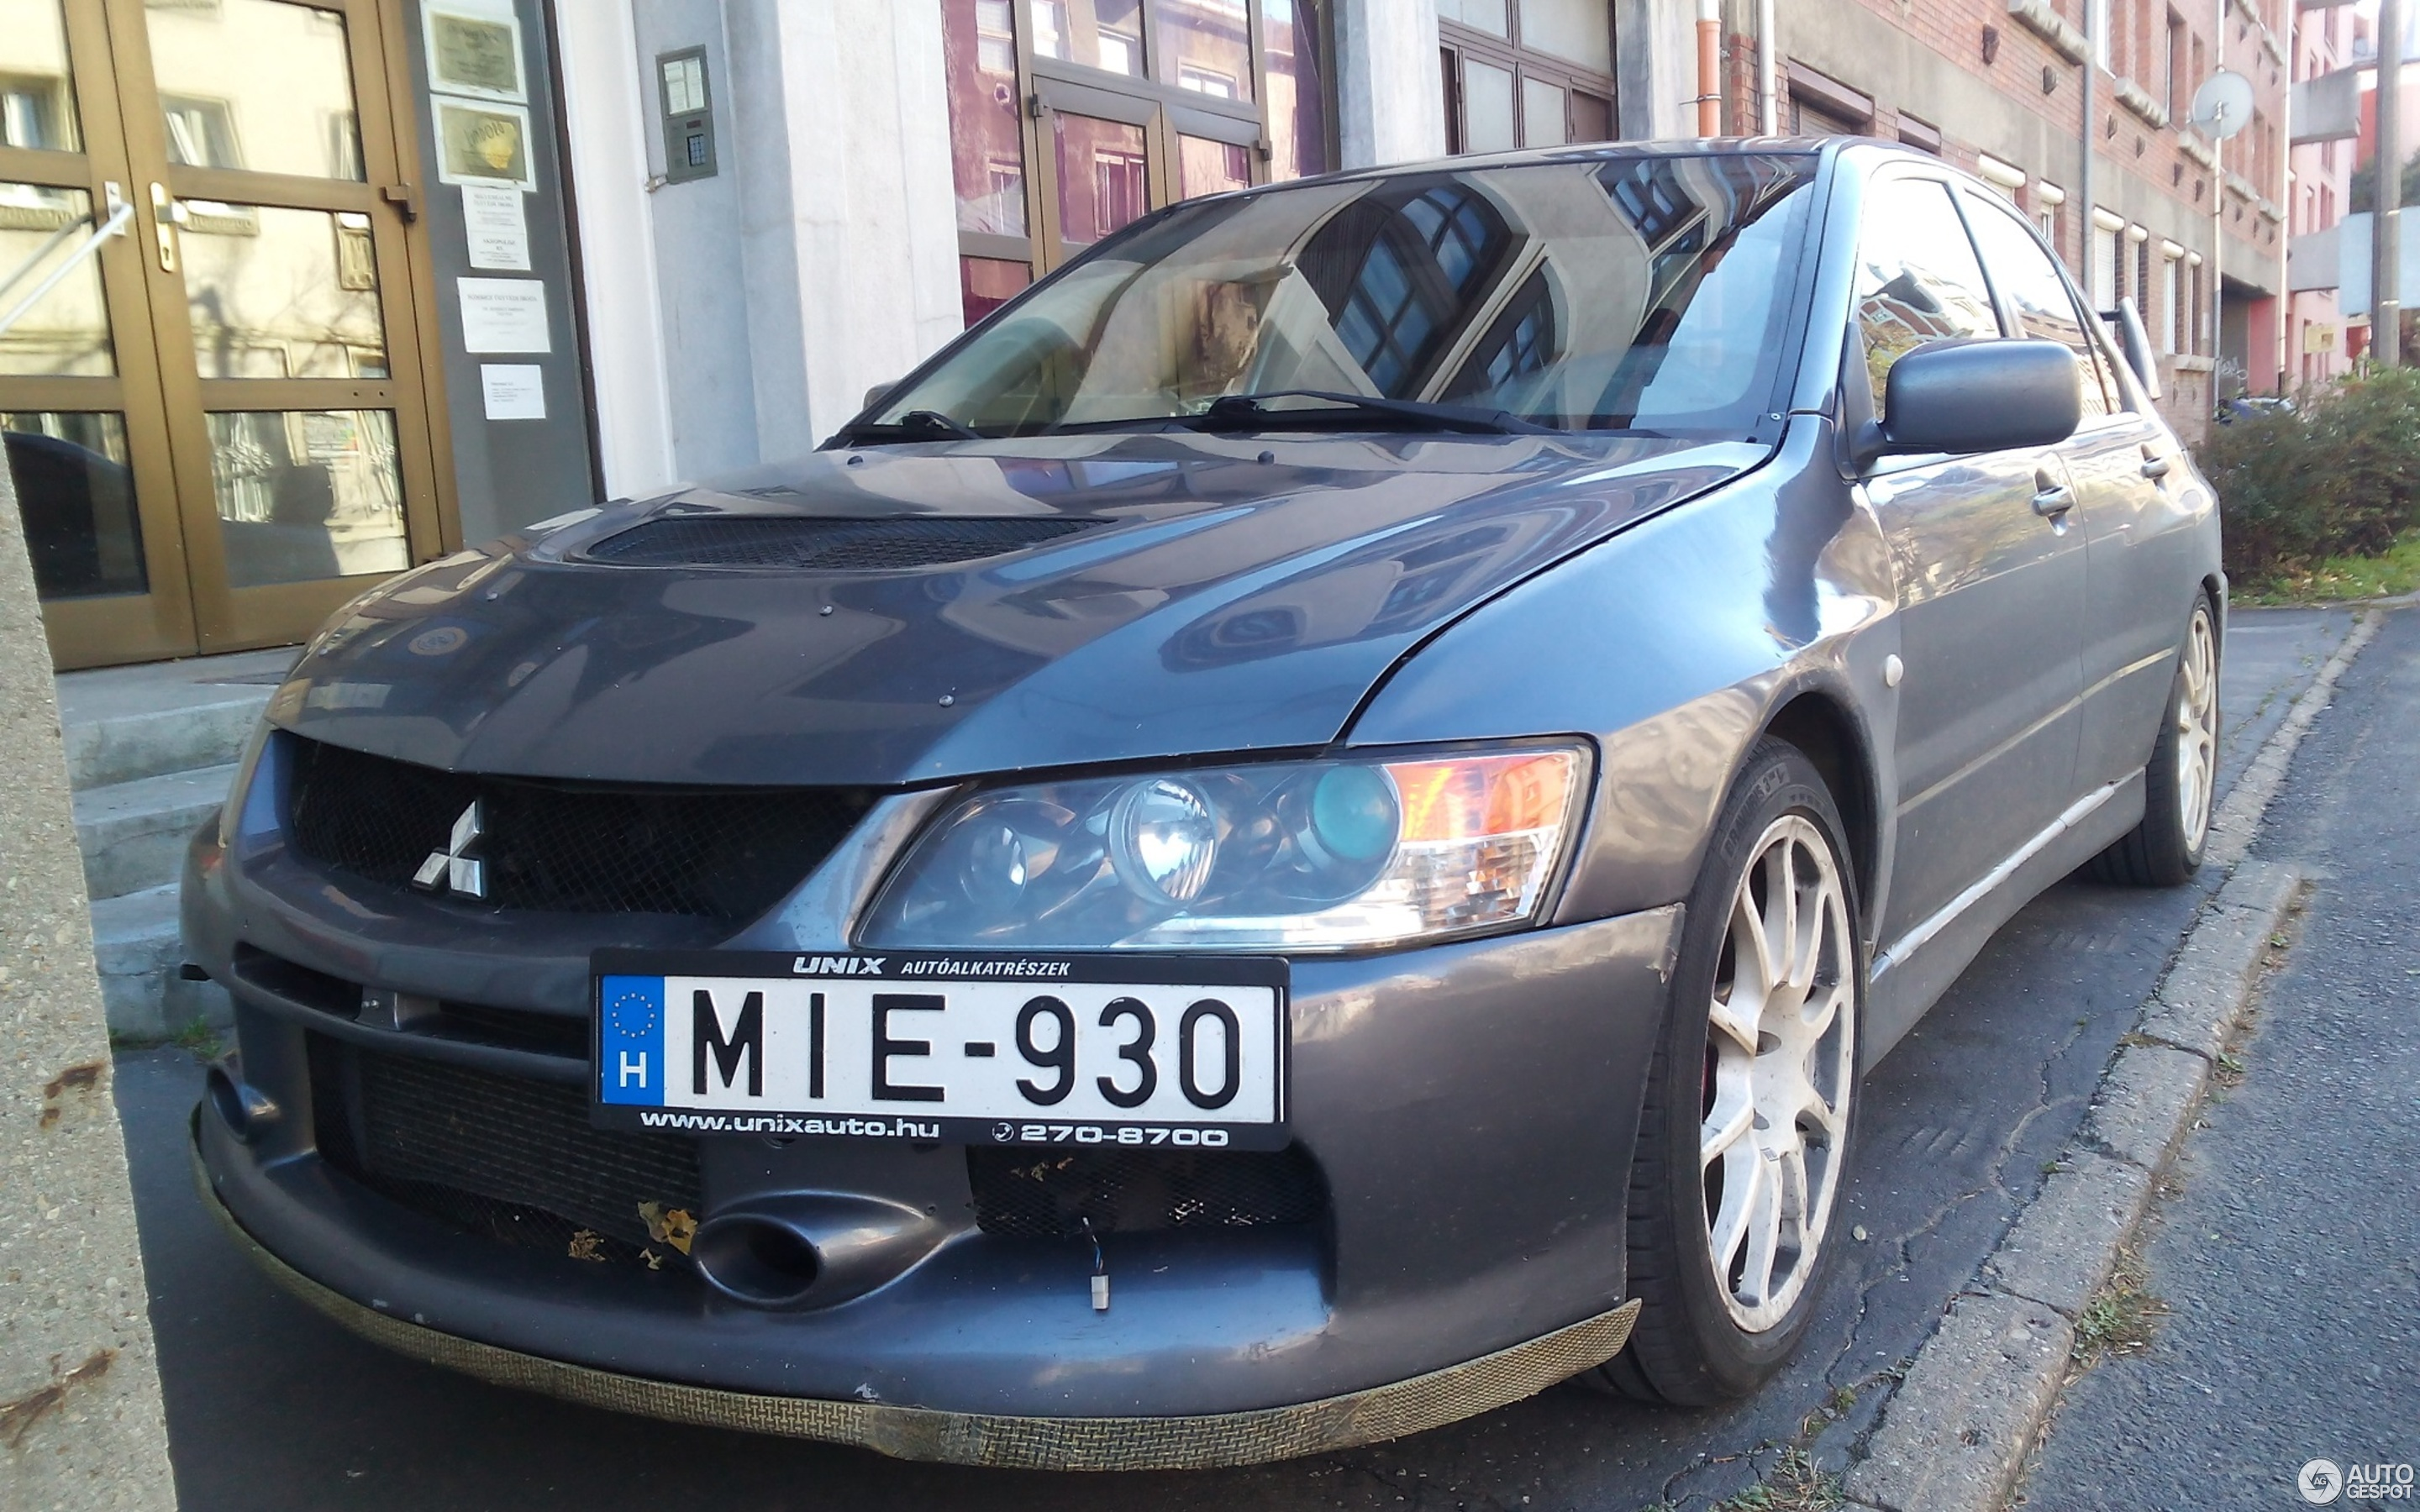 used cars sale crashed gsr for midwest forums mitsubishi img size mb ww name a views evolutionm evo fs